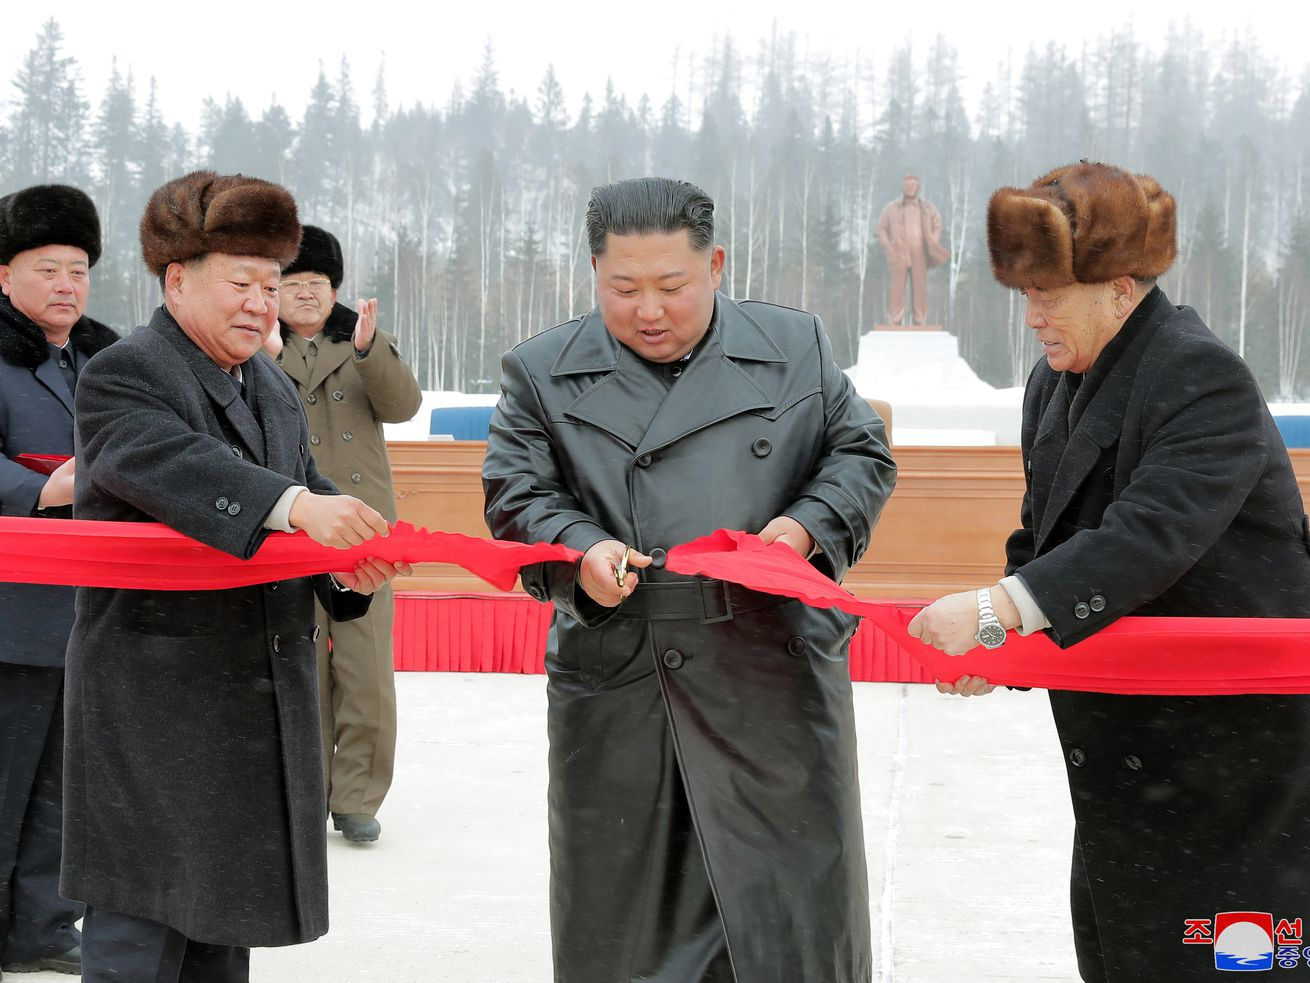 What Kim Jong Un's regime shake-up says about his leadership